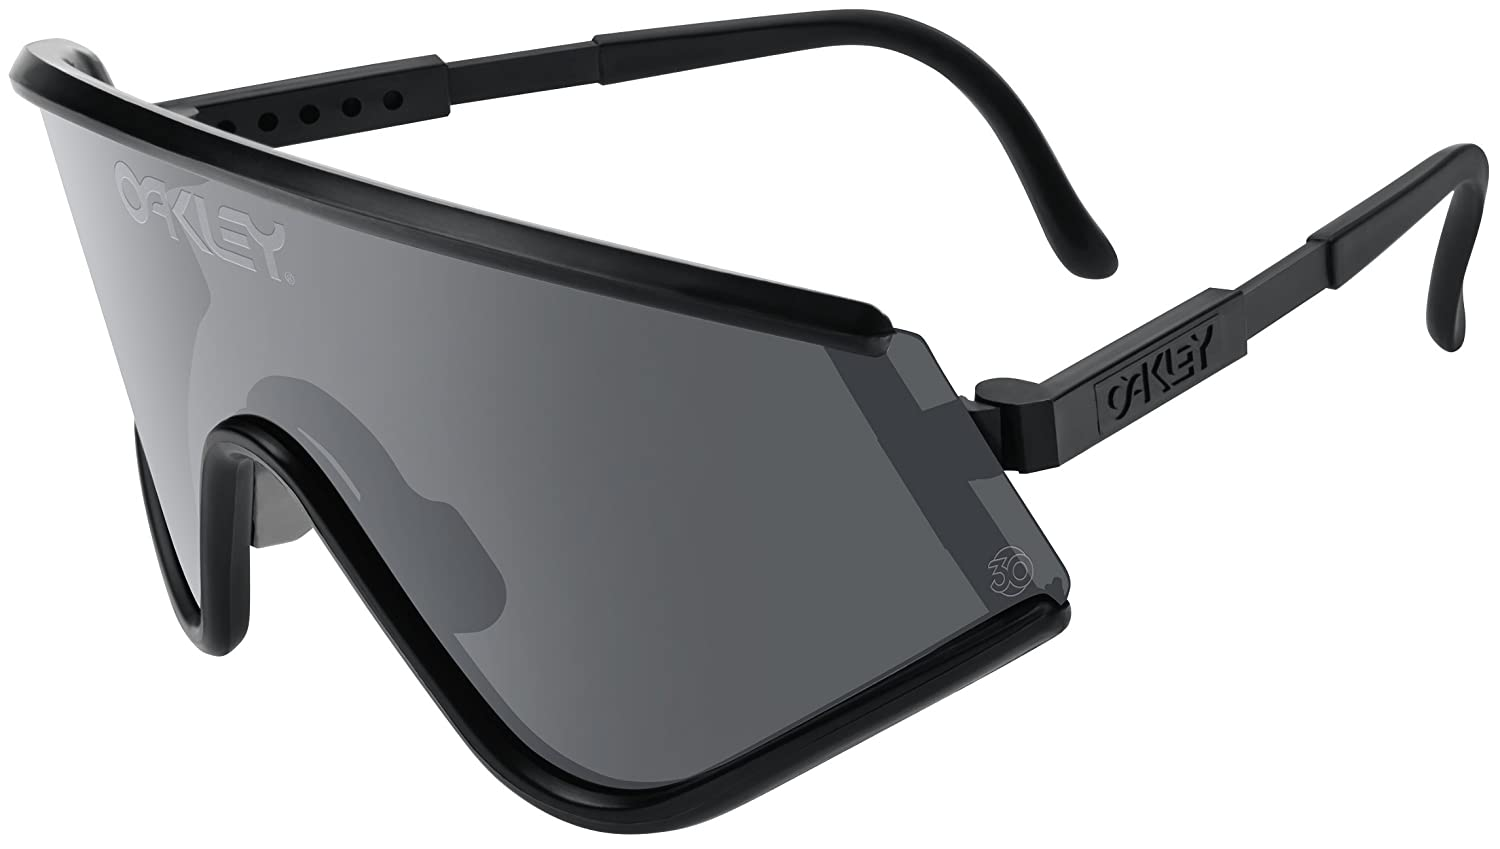 oakley black glasses  Amazon.com: Oakley Unisex Heritage Eyeshade Sunglasses, Black/Grey ...